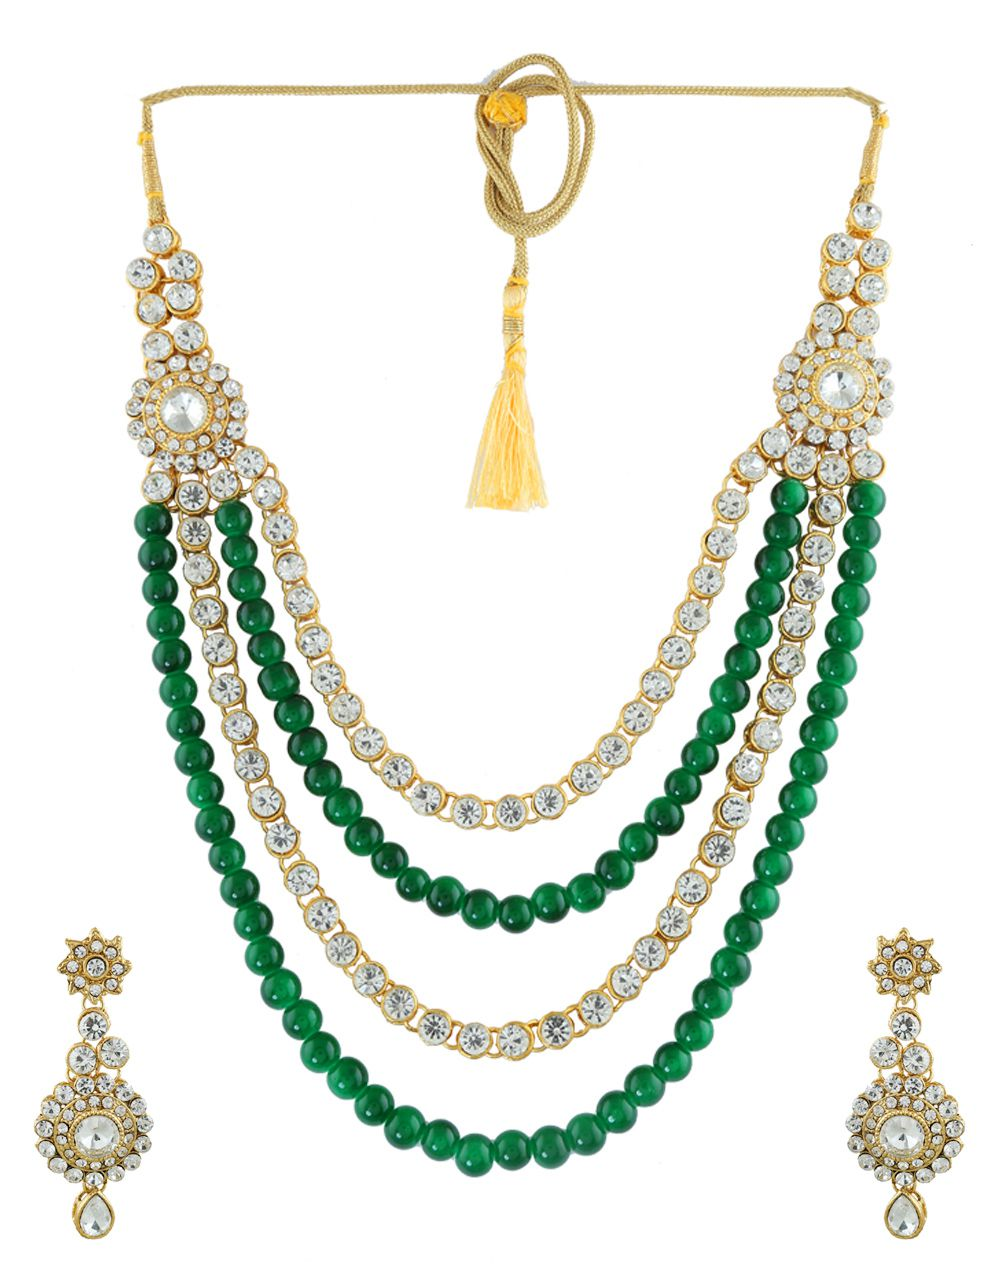 Anuradha Art Green Colour Very Classy Studded With White Stones And Beads Styled Traditional Necklace Set For Women/Girls